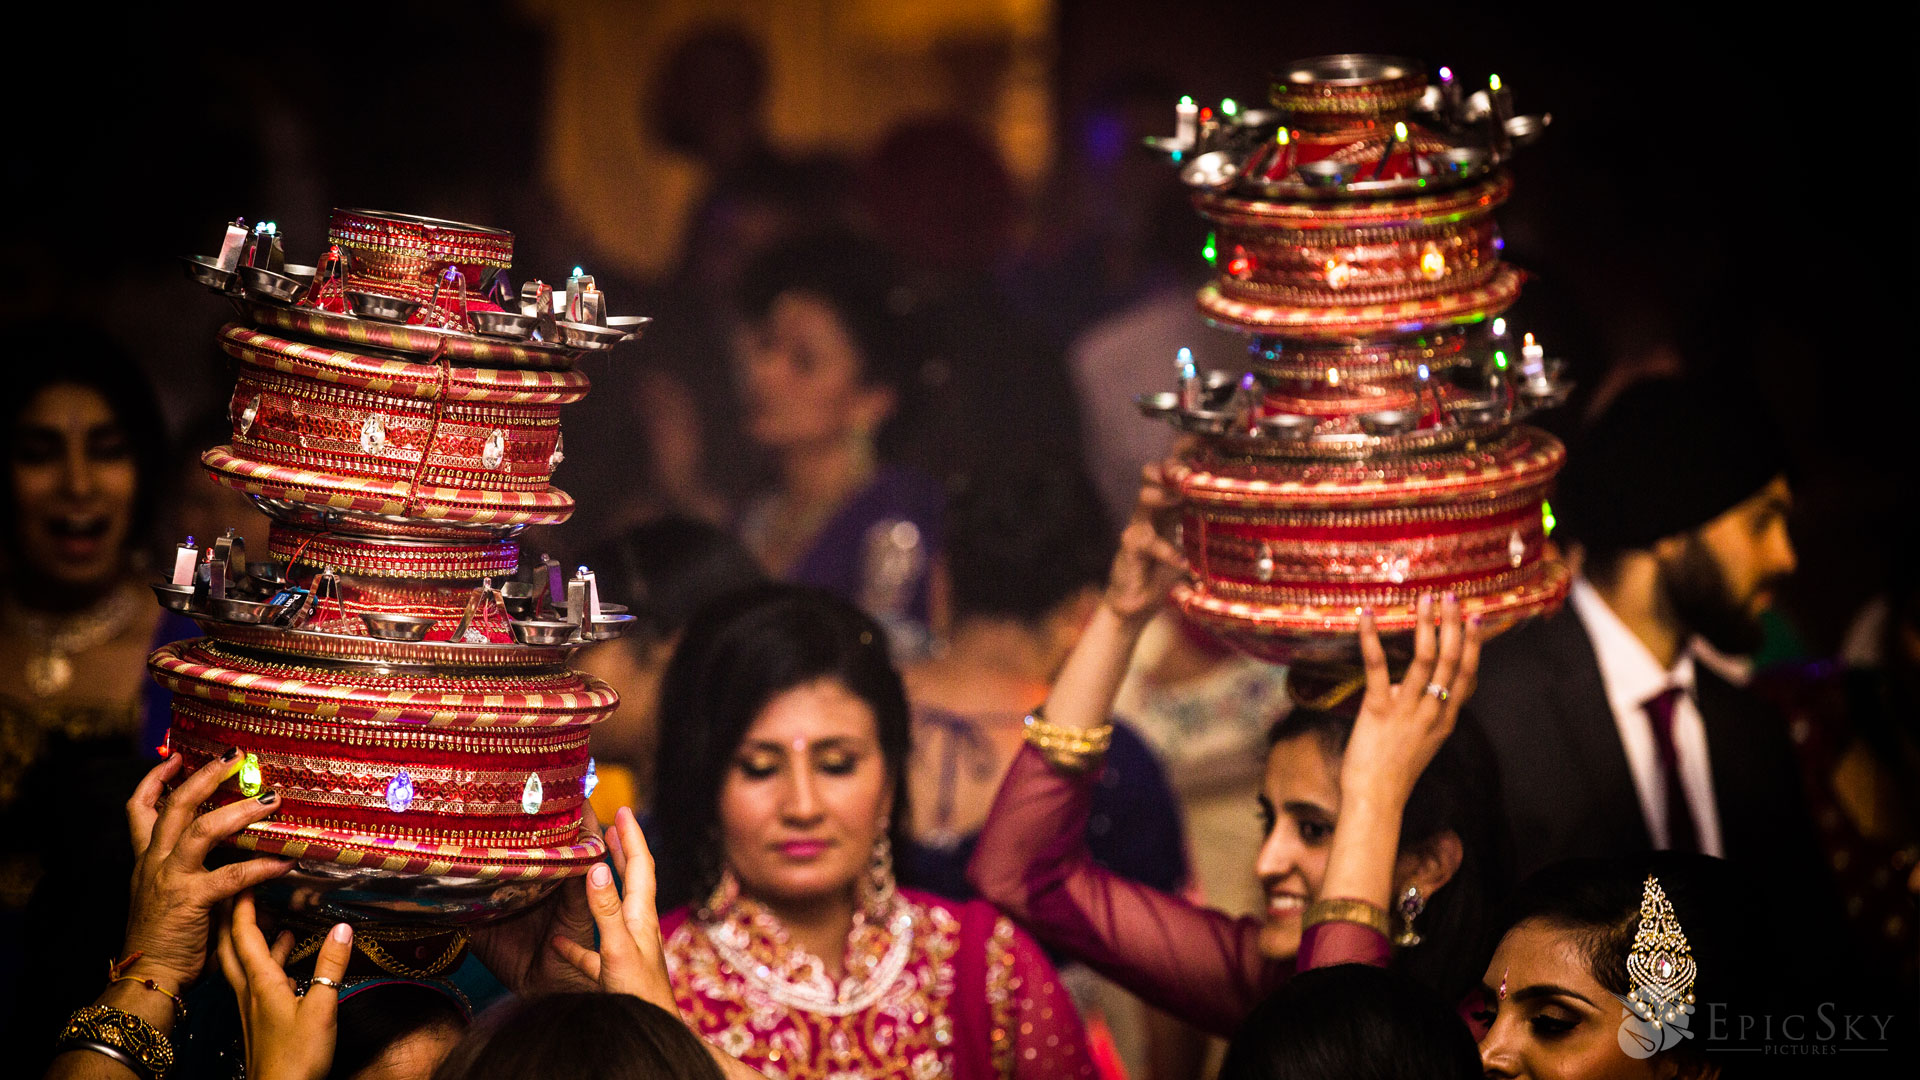 epic_sky_pictures_dance_photography_accessories_wedding_weddingday_details_jago_fire_candid_wedding_sikh_wedding_bhangra